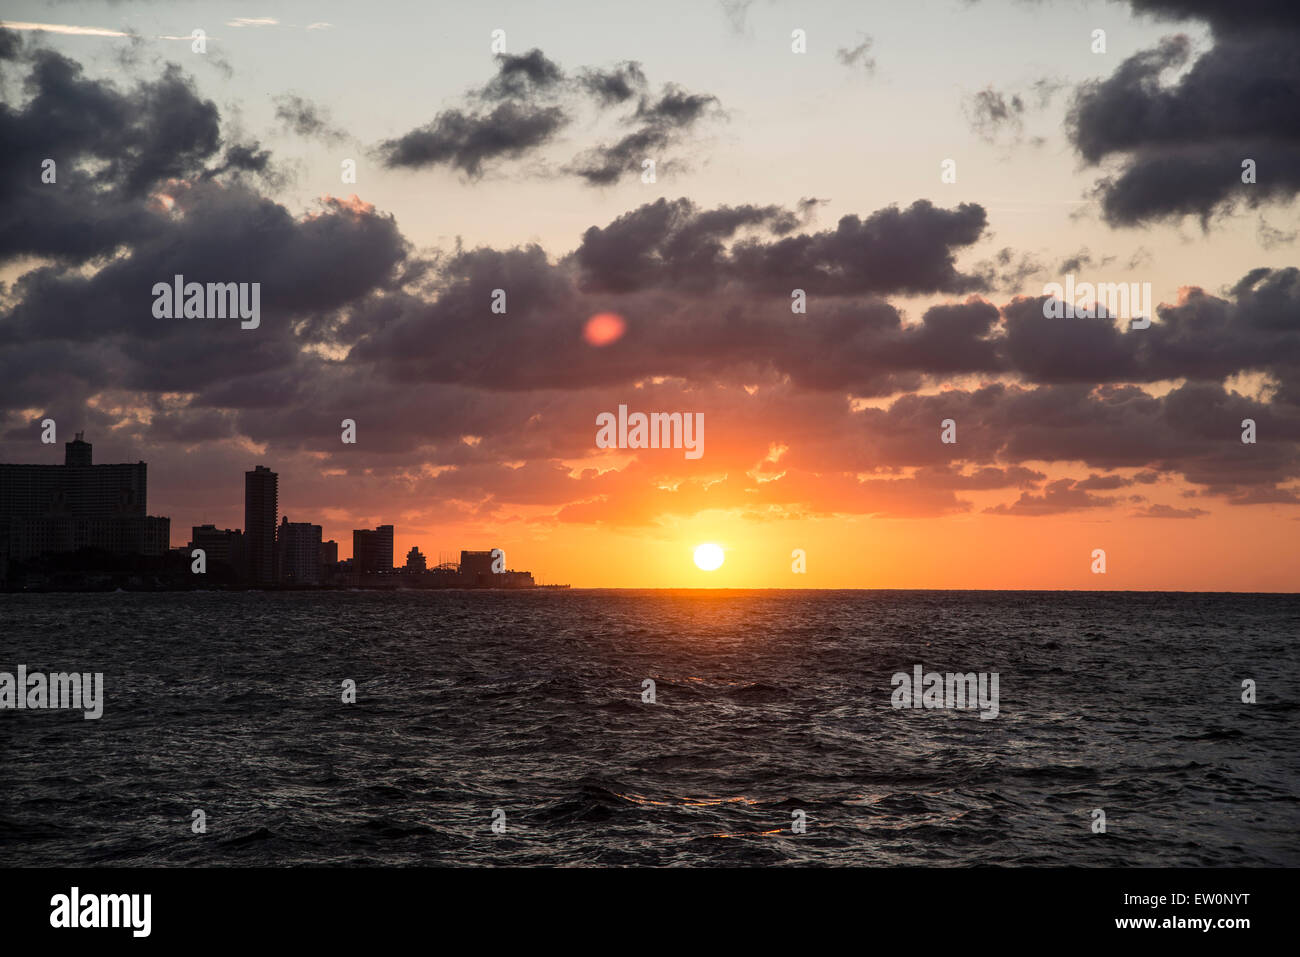 Sonnenuntergang am Malecón in Havanna Stockbild